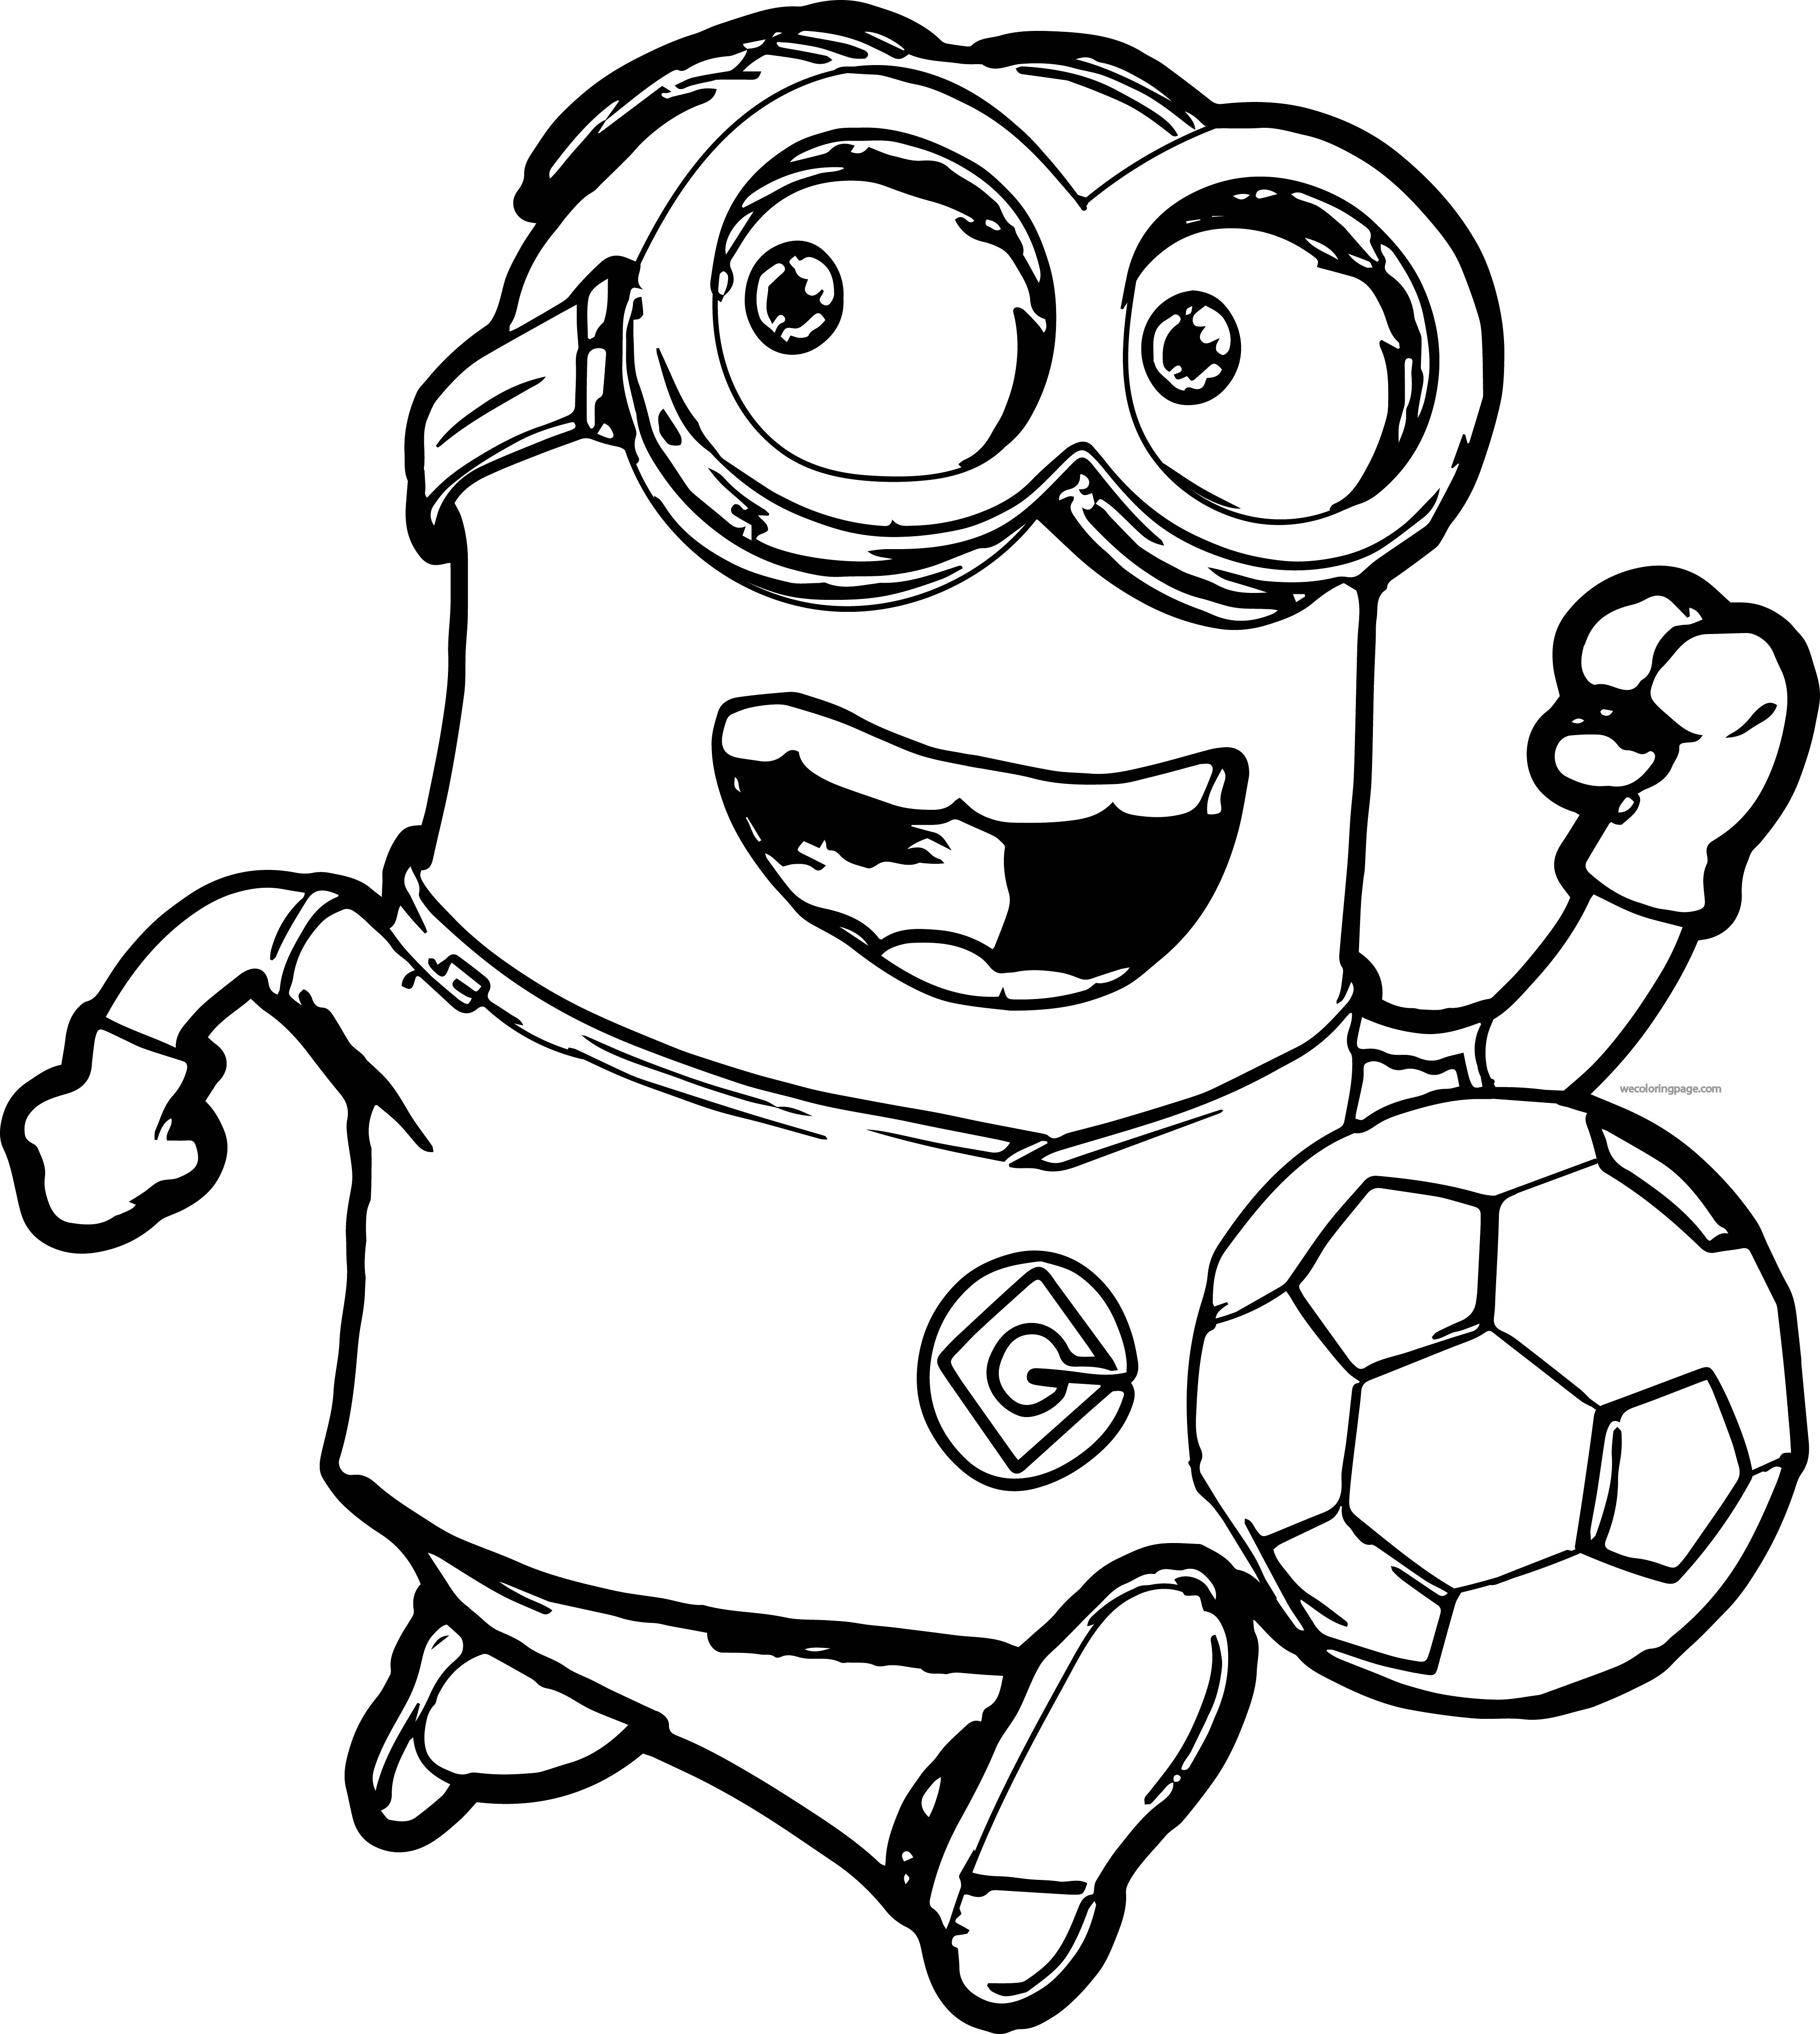 3945x4408 Soccer Coloring Page